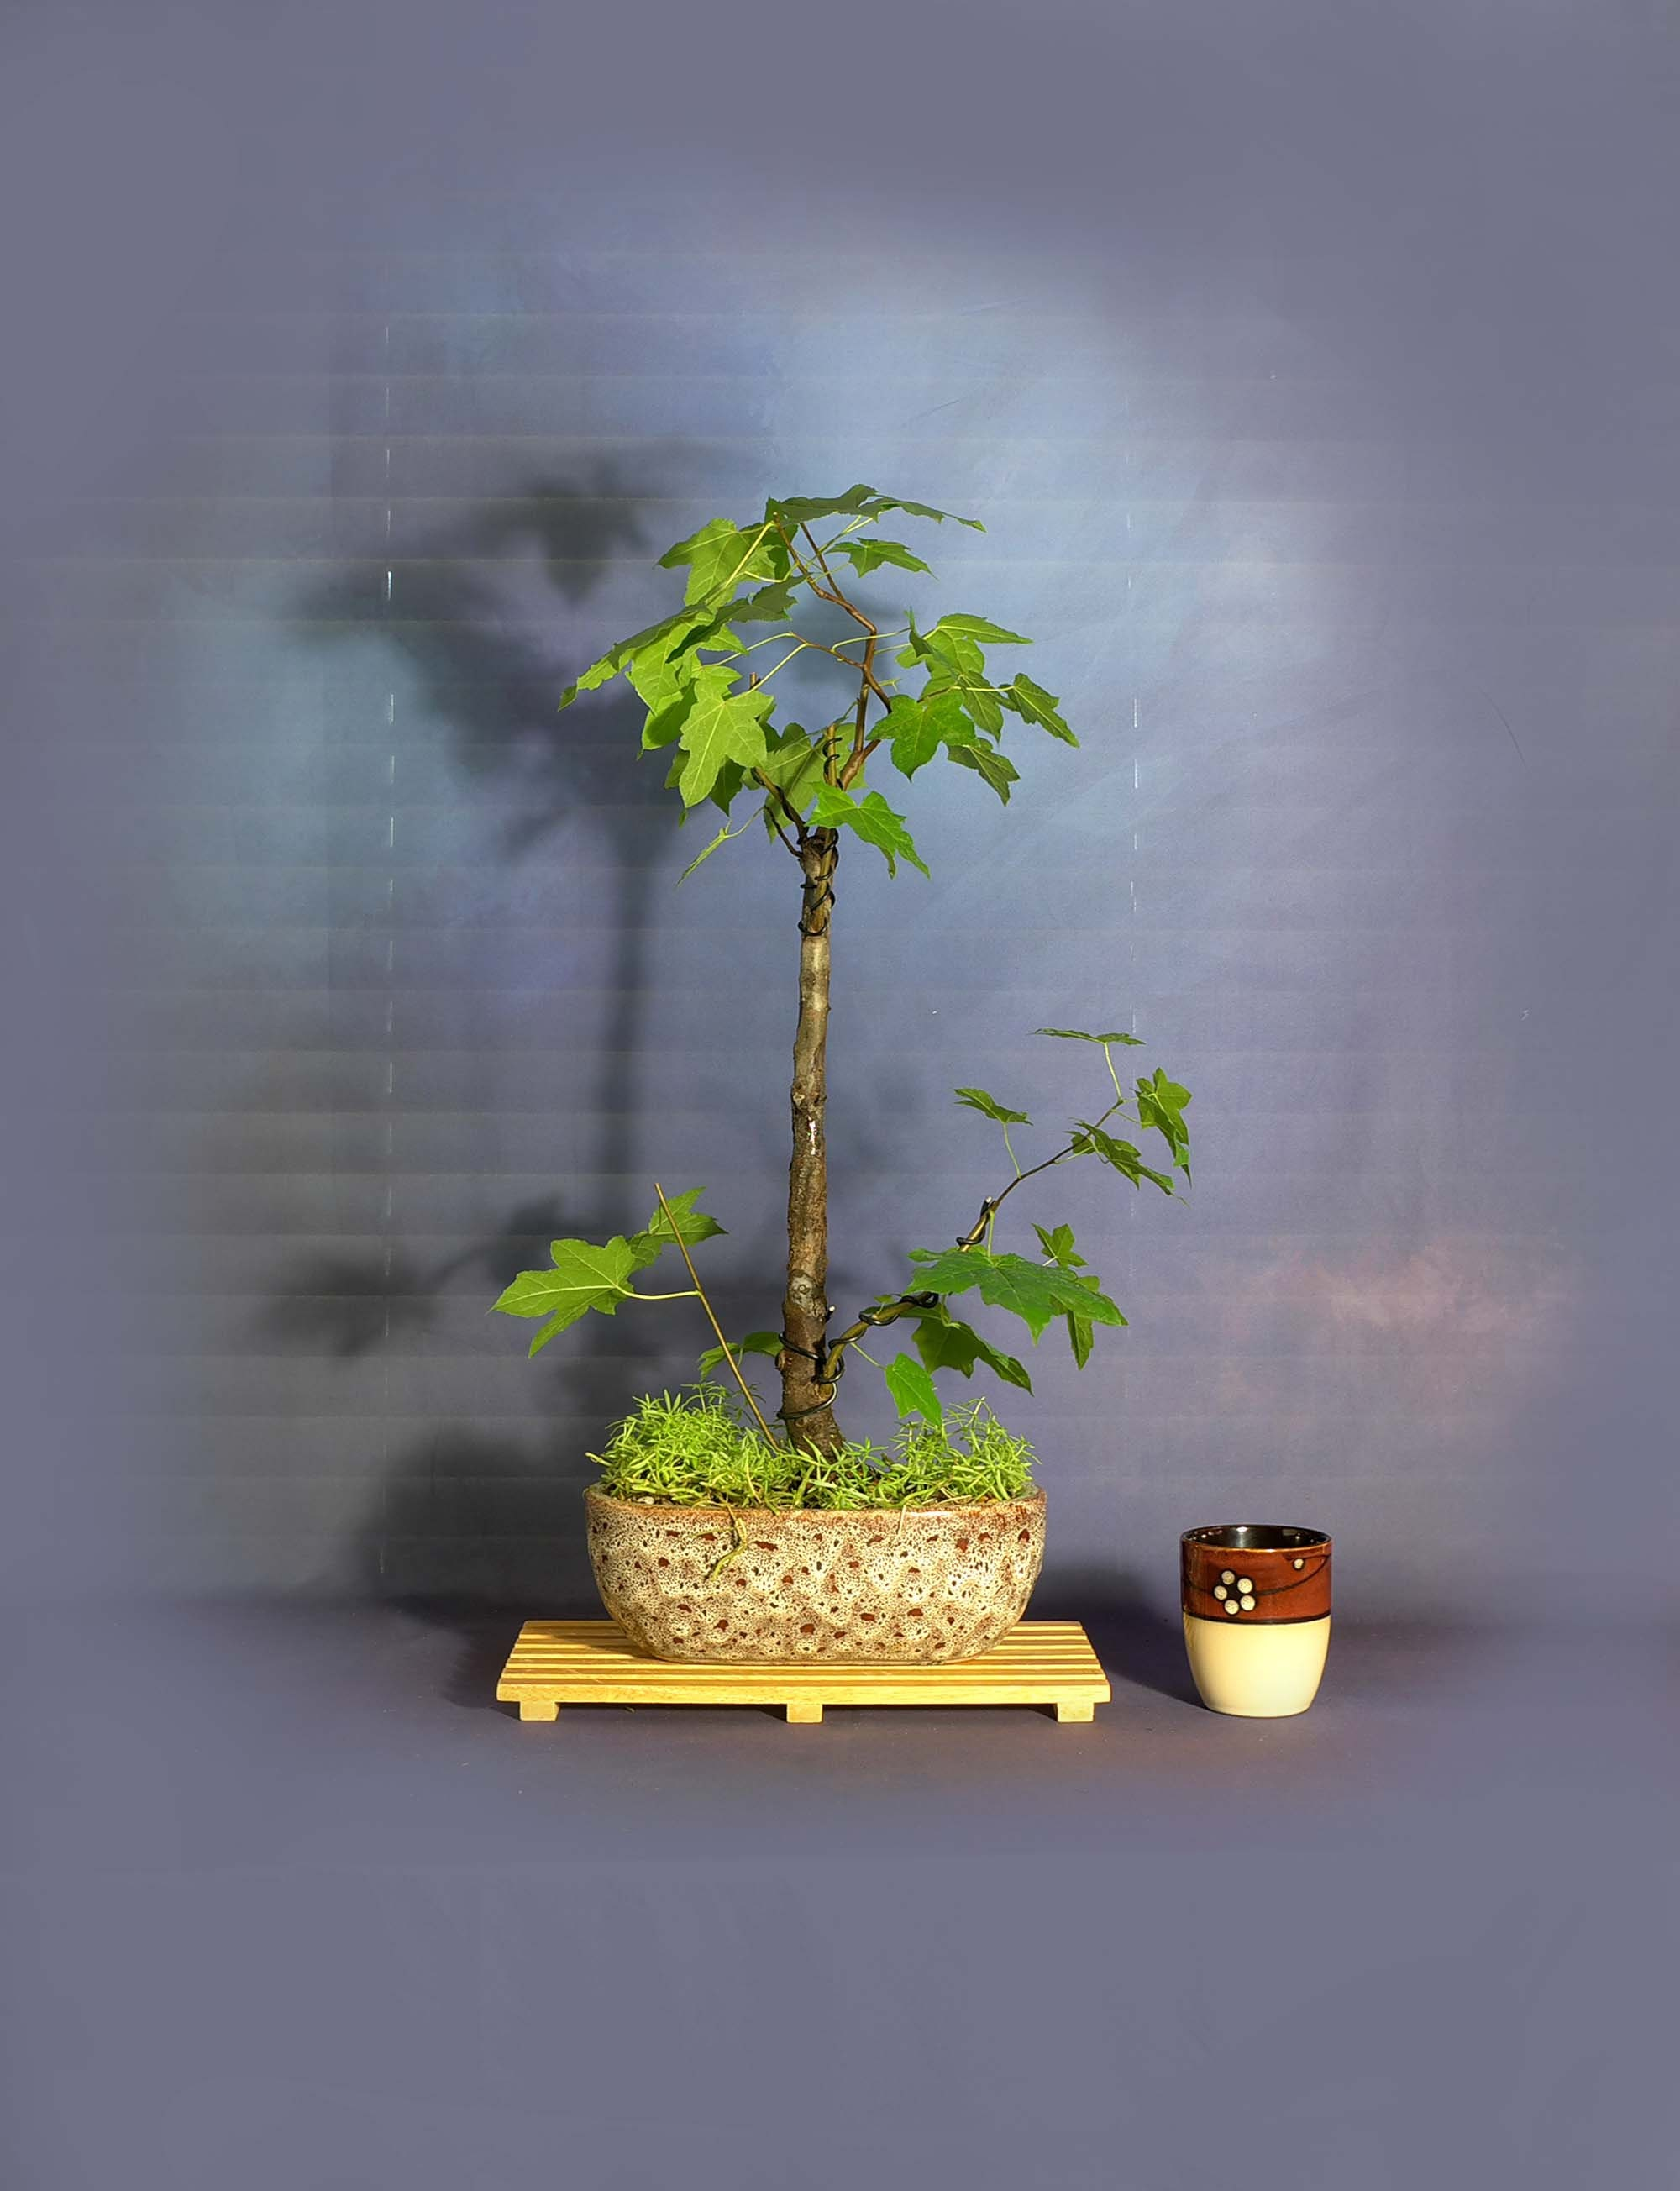 Sweetgum Bonsai Tree Light Endtunnel Collection From Livebonsaitree